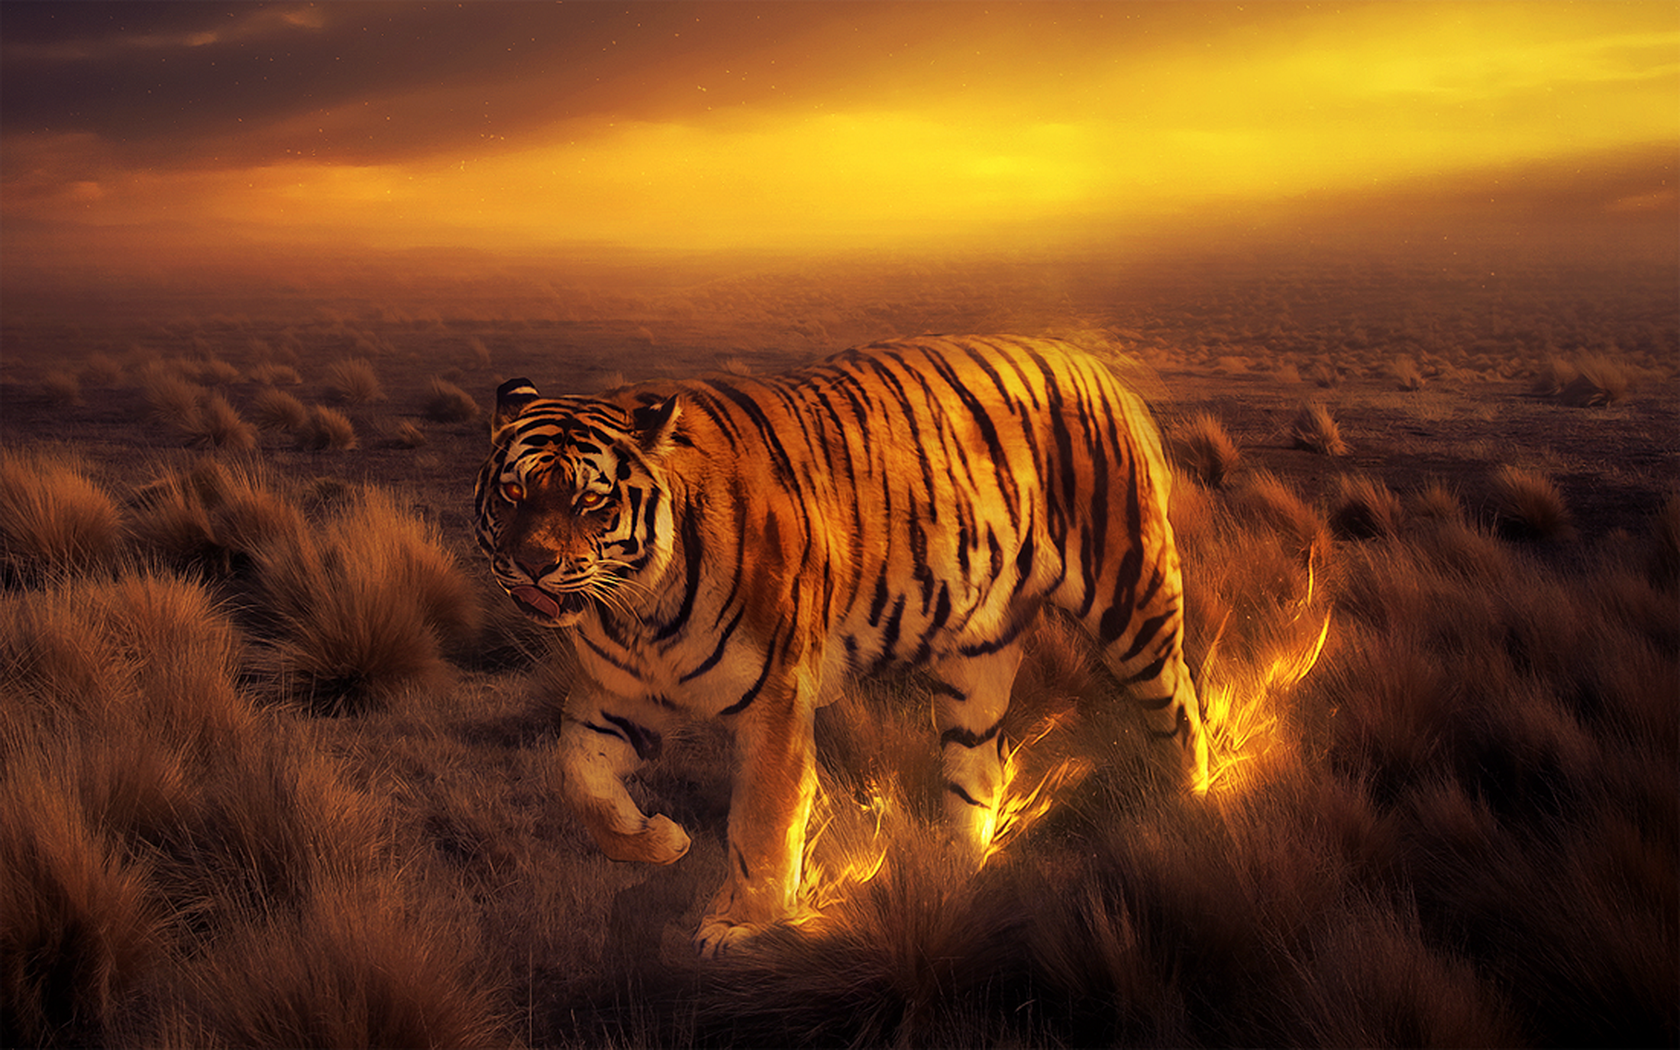 Tiger Wallpaper and Background Image | 1680x1050 | ID:390257